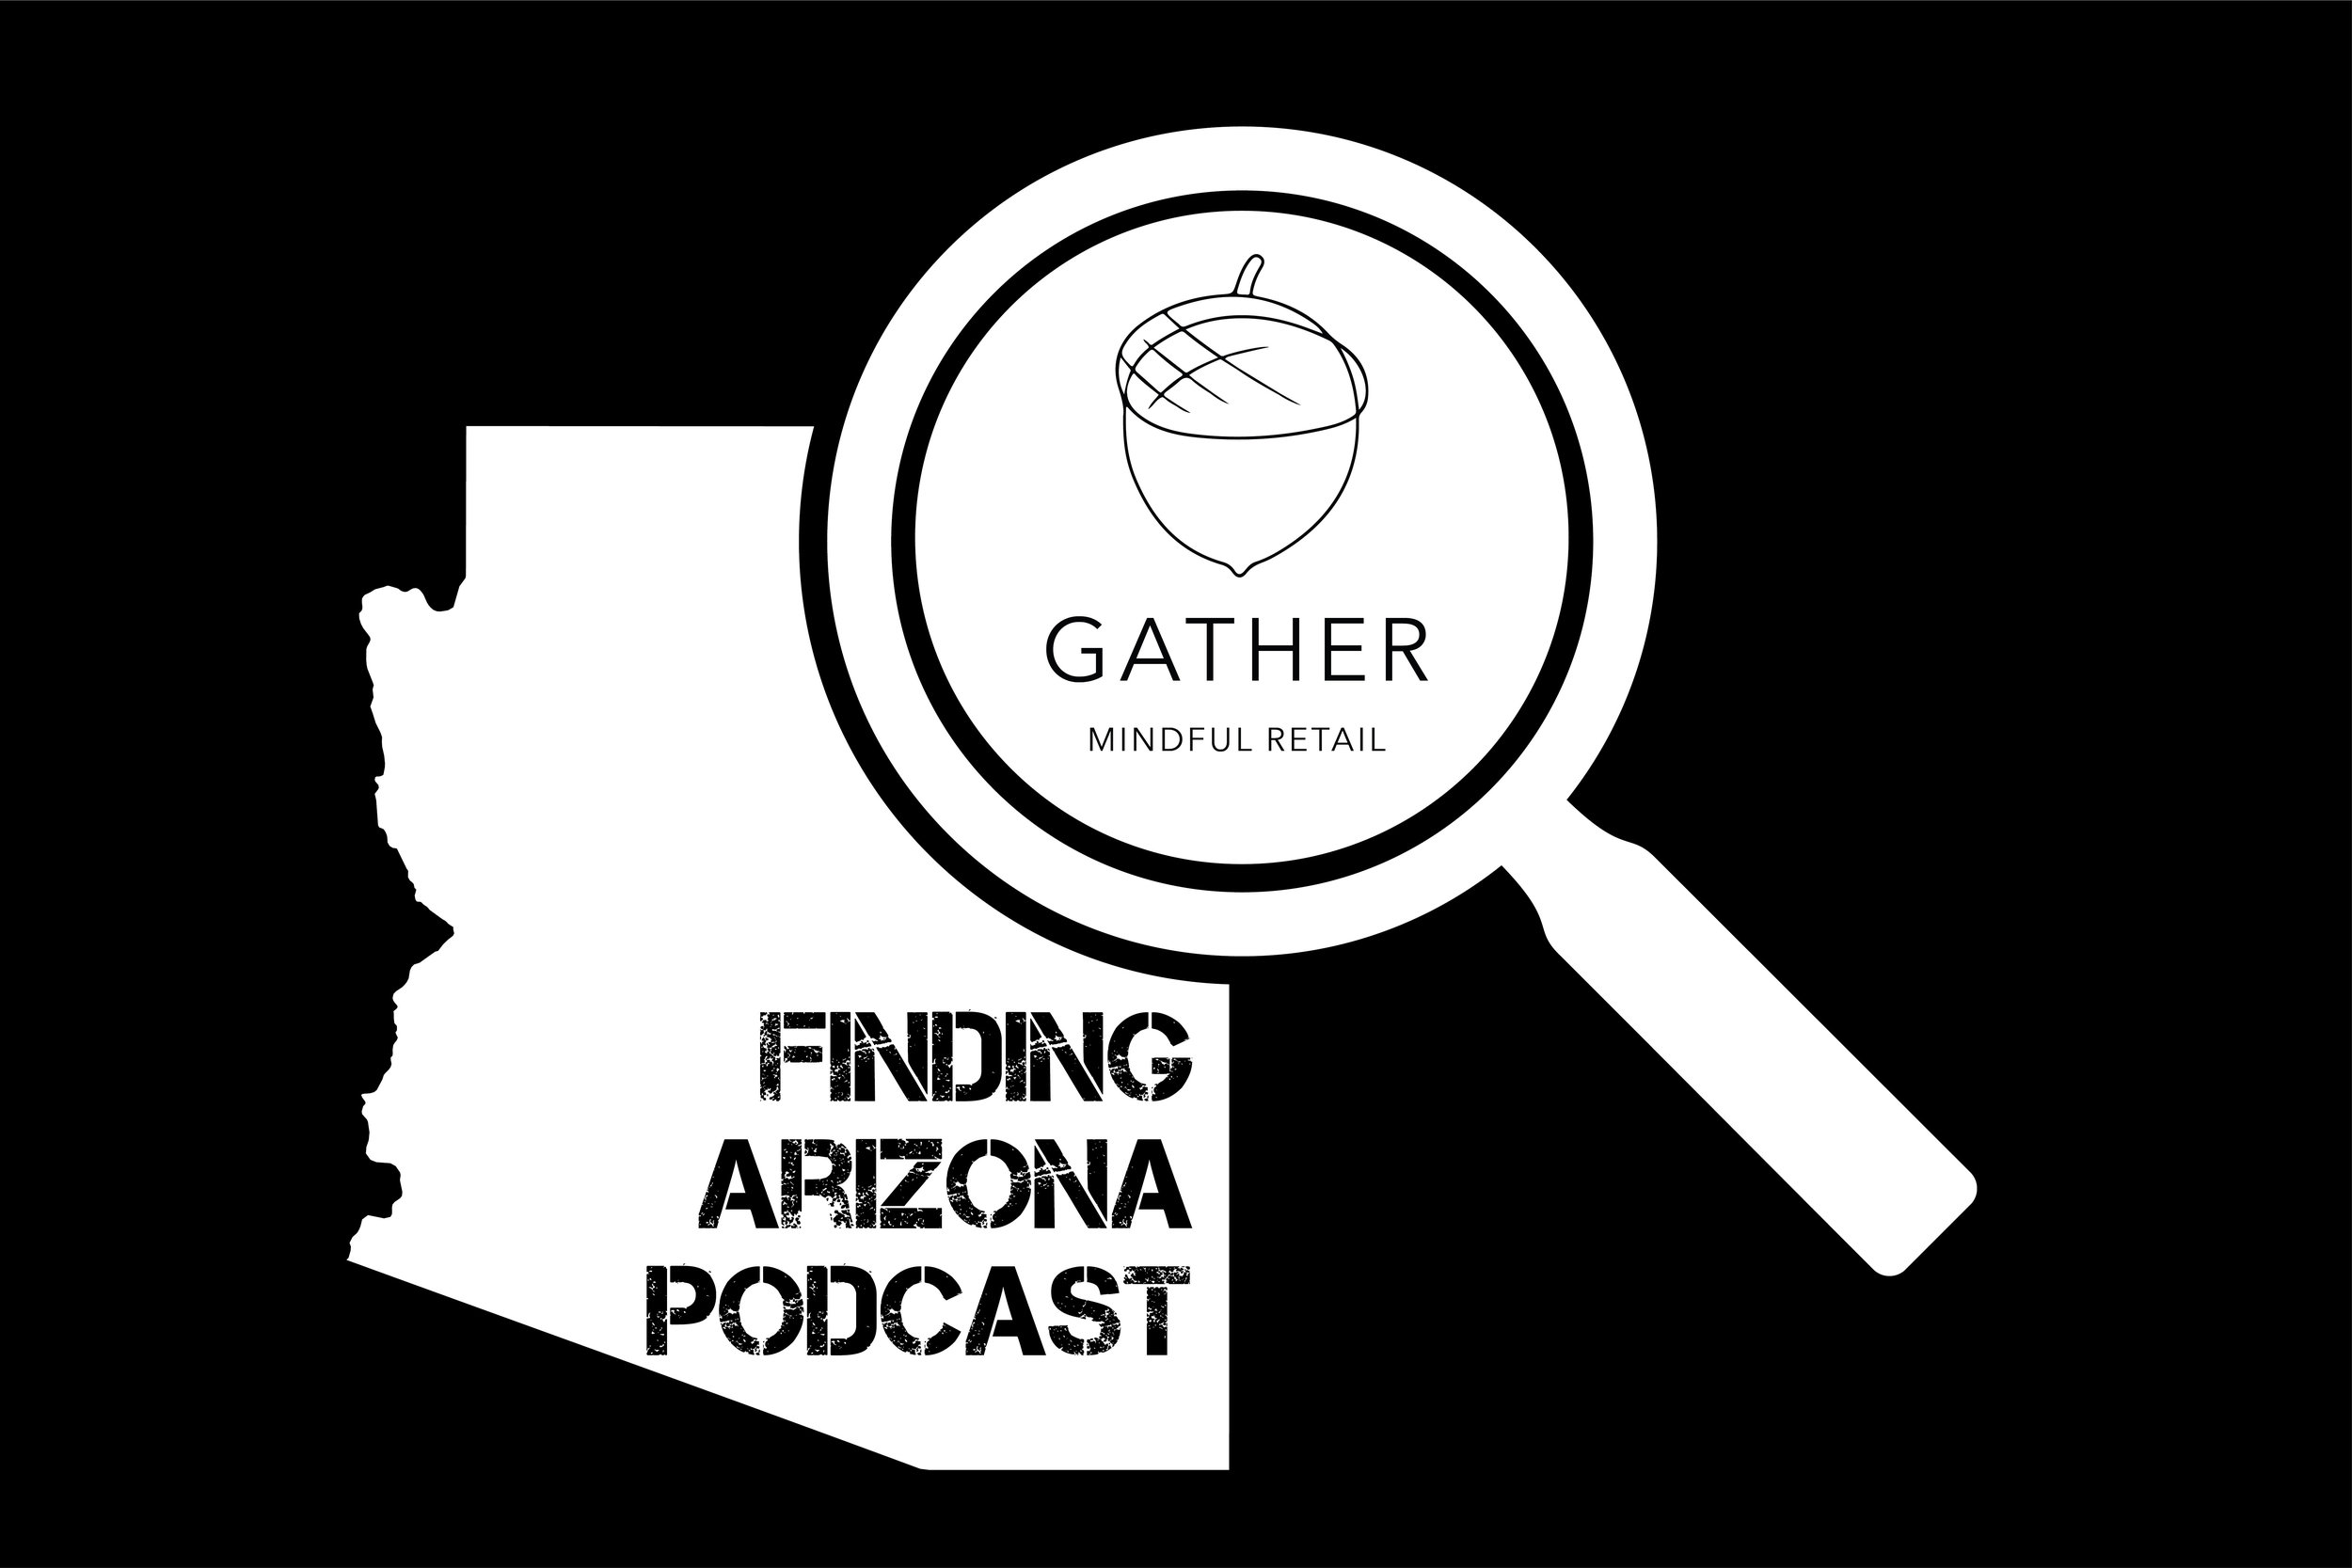 PodCastLogo-gatherphx.jpg